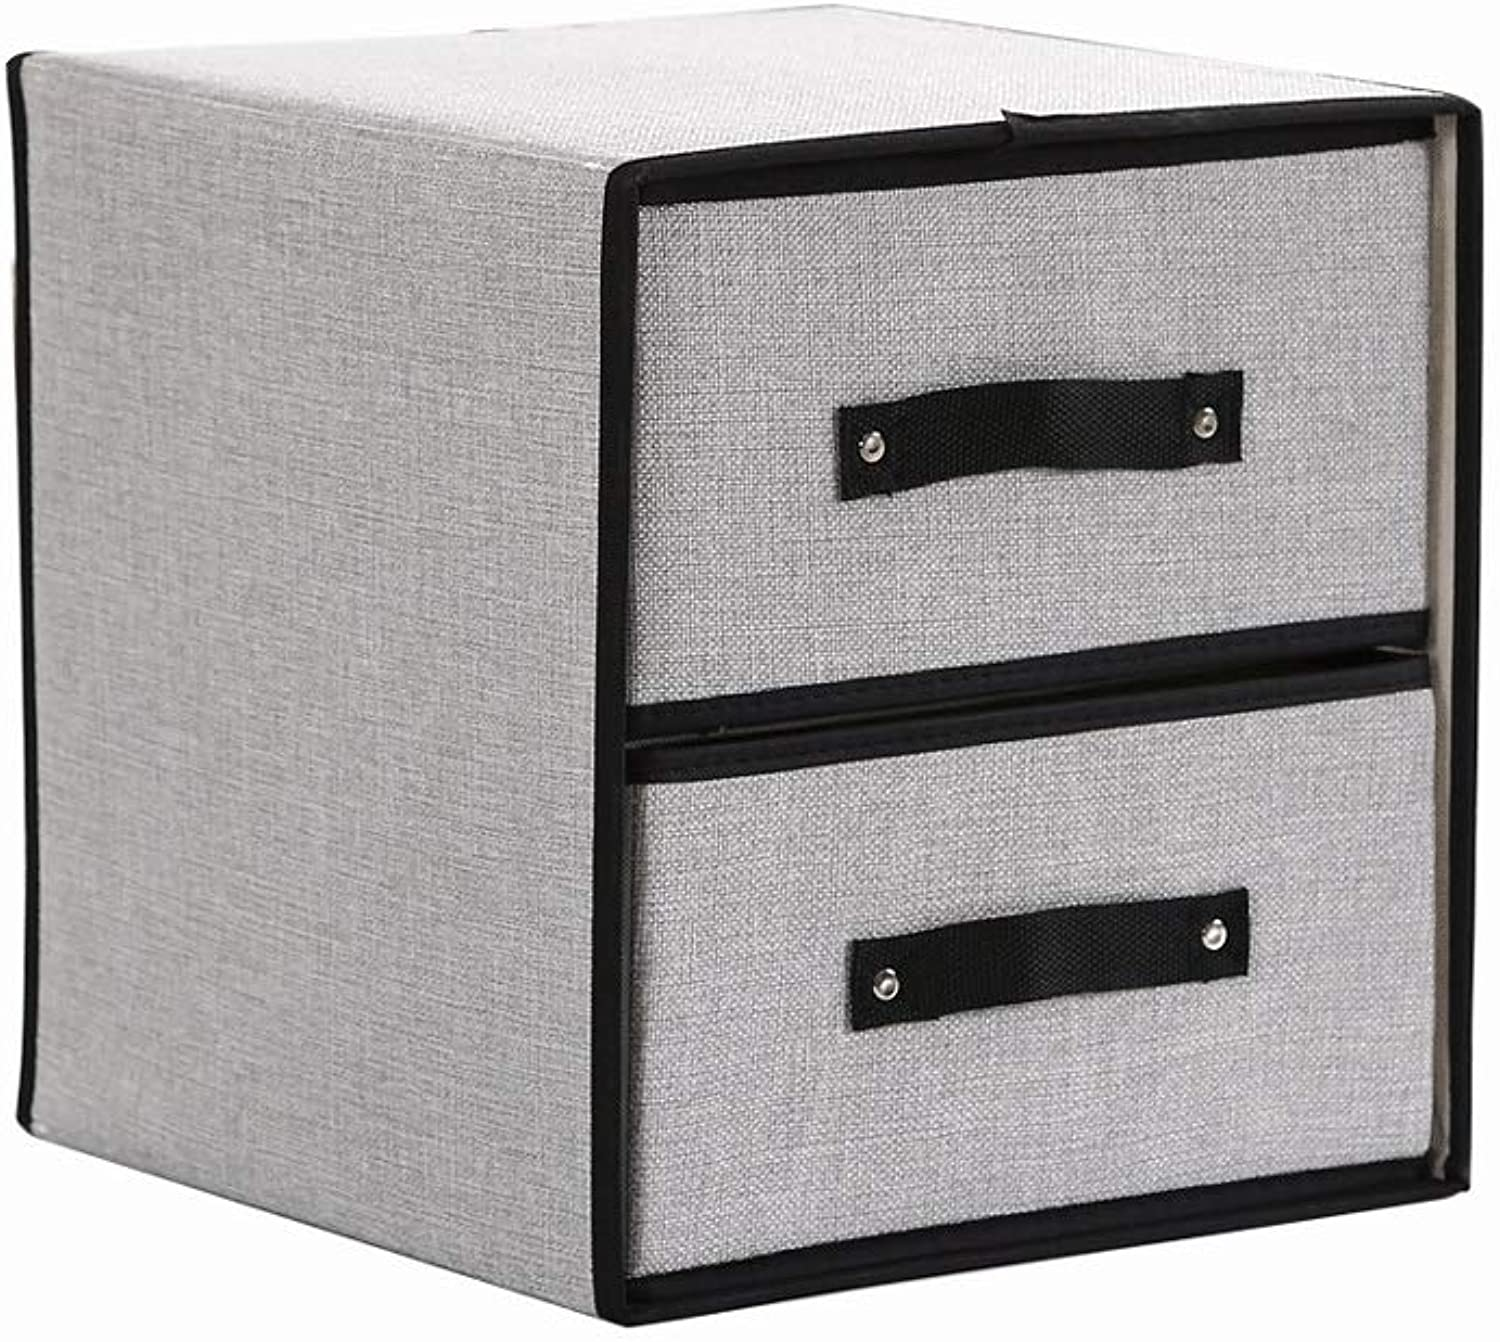 Cabinet Multi-Layer Storage Box Cotton and Linen 2 Floors (color A